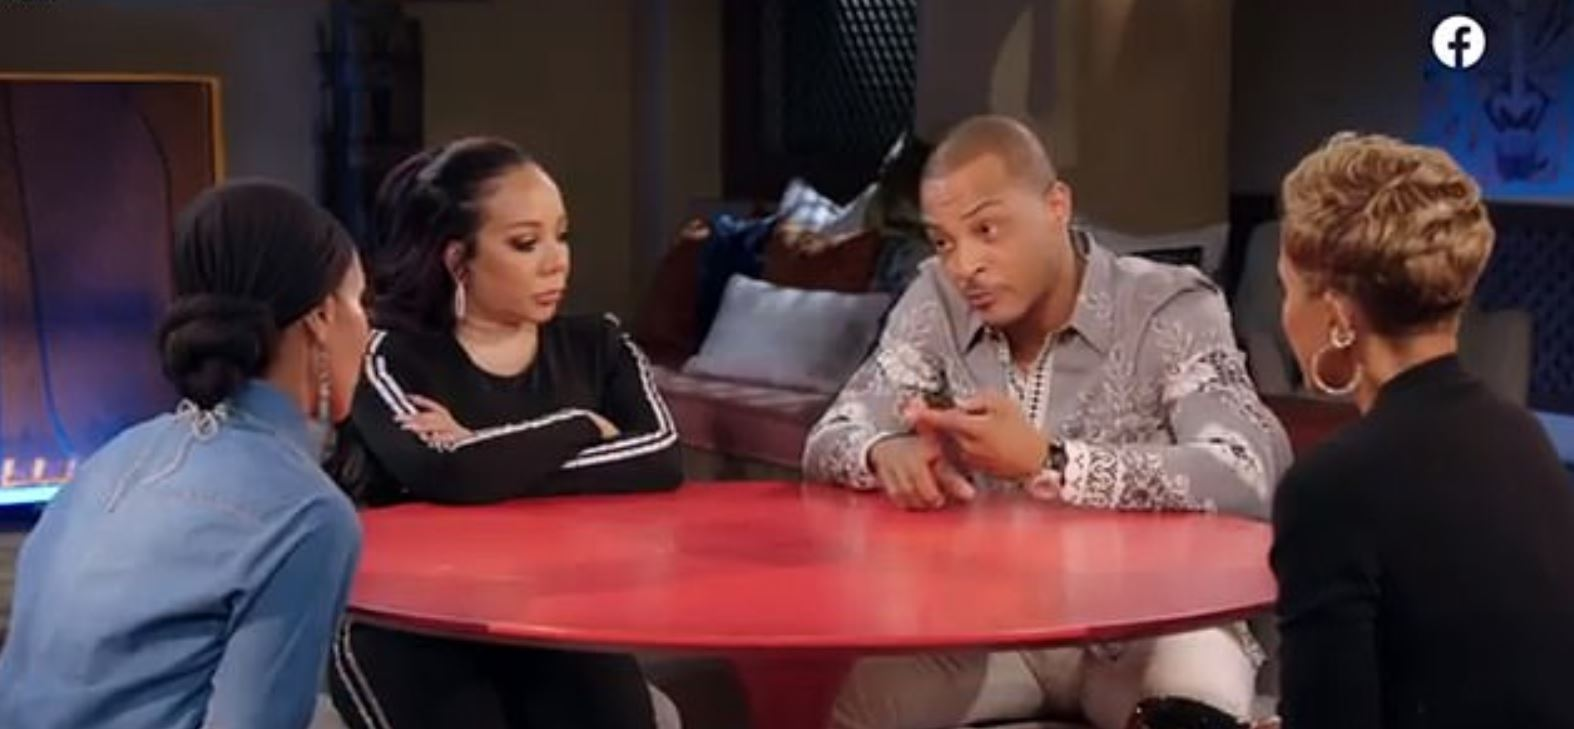 TI talks about taking daughter to gynaecologist